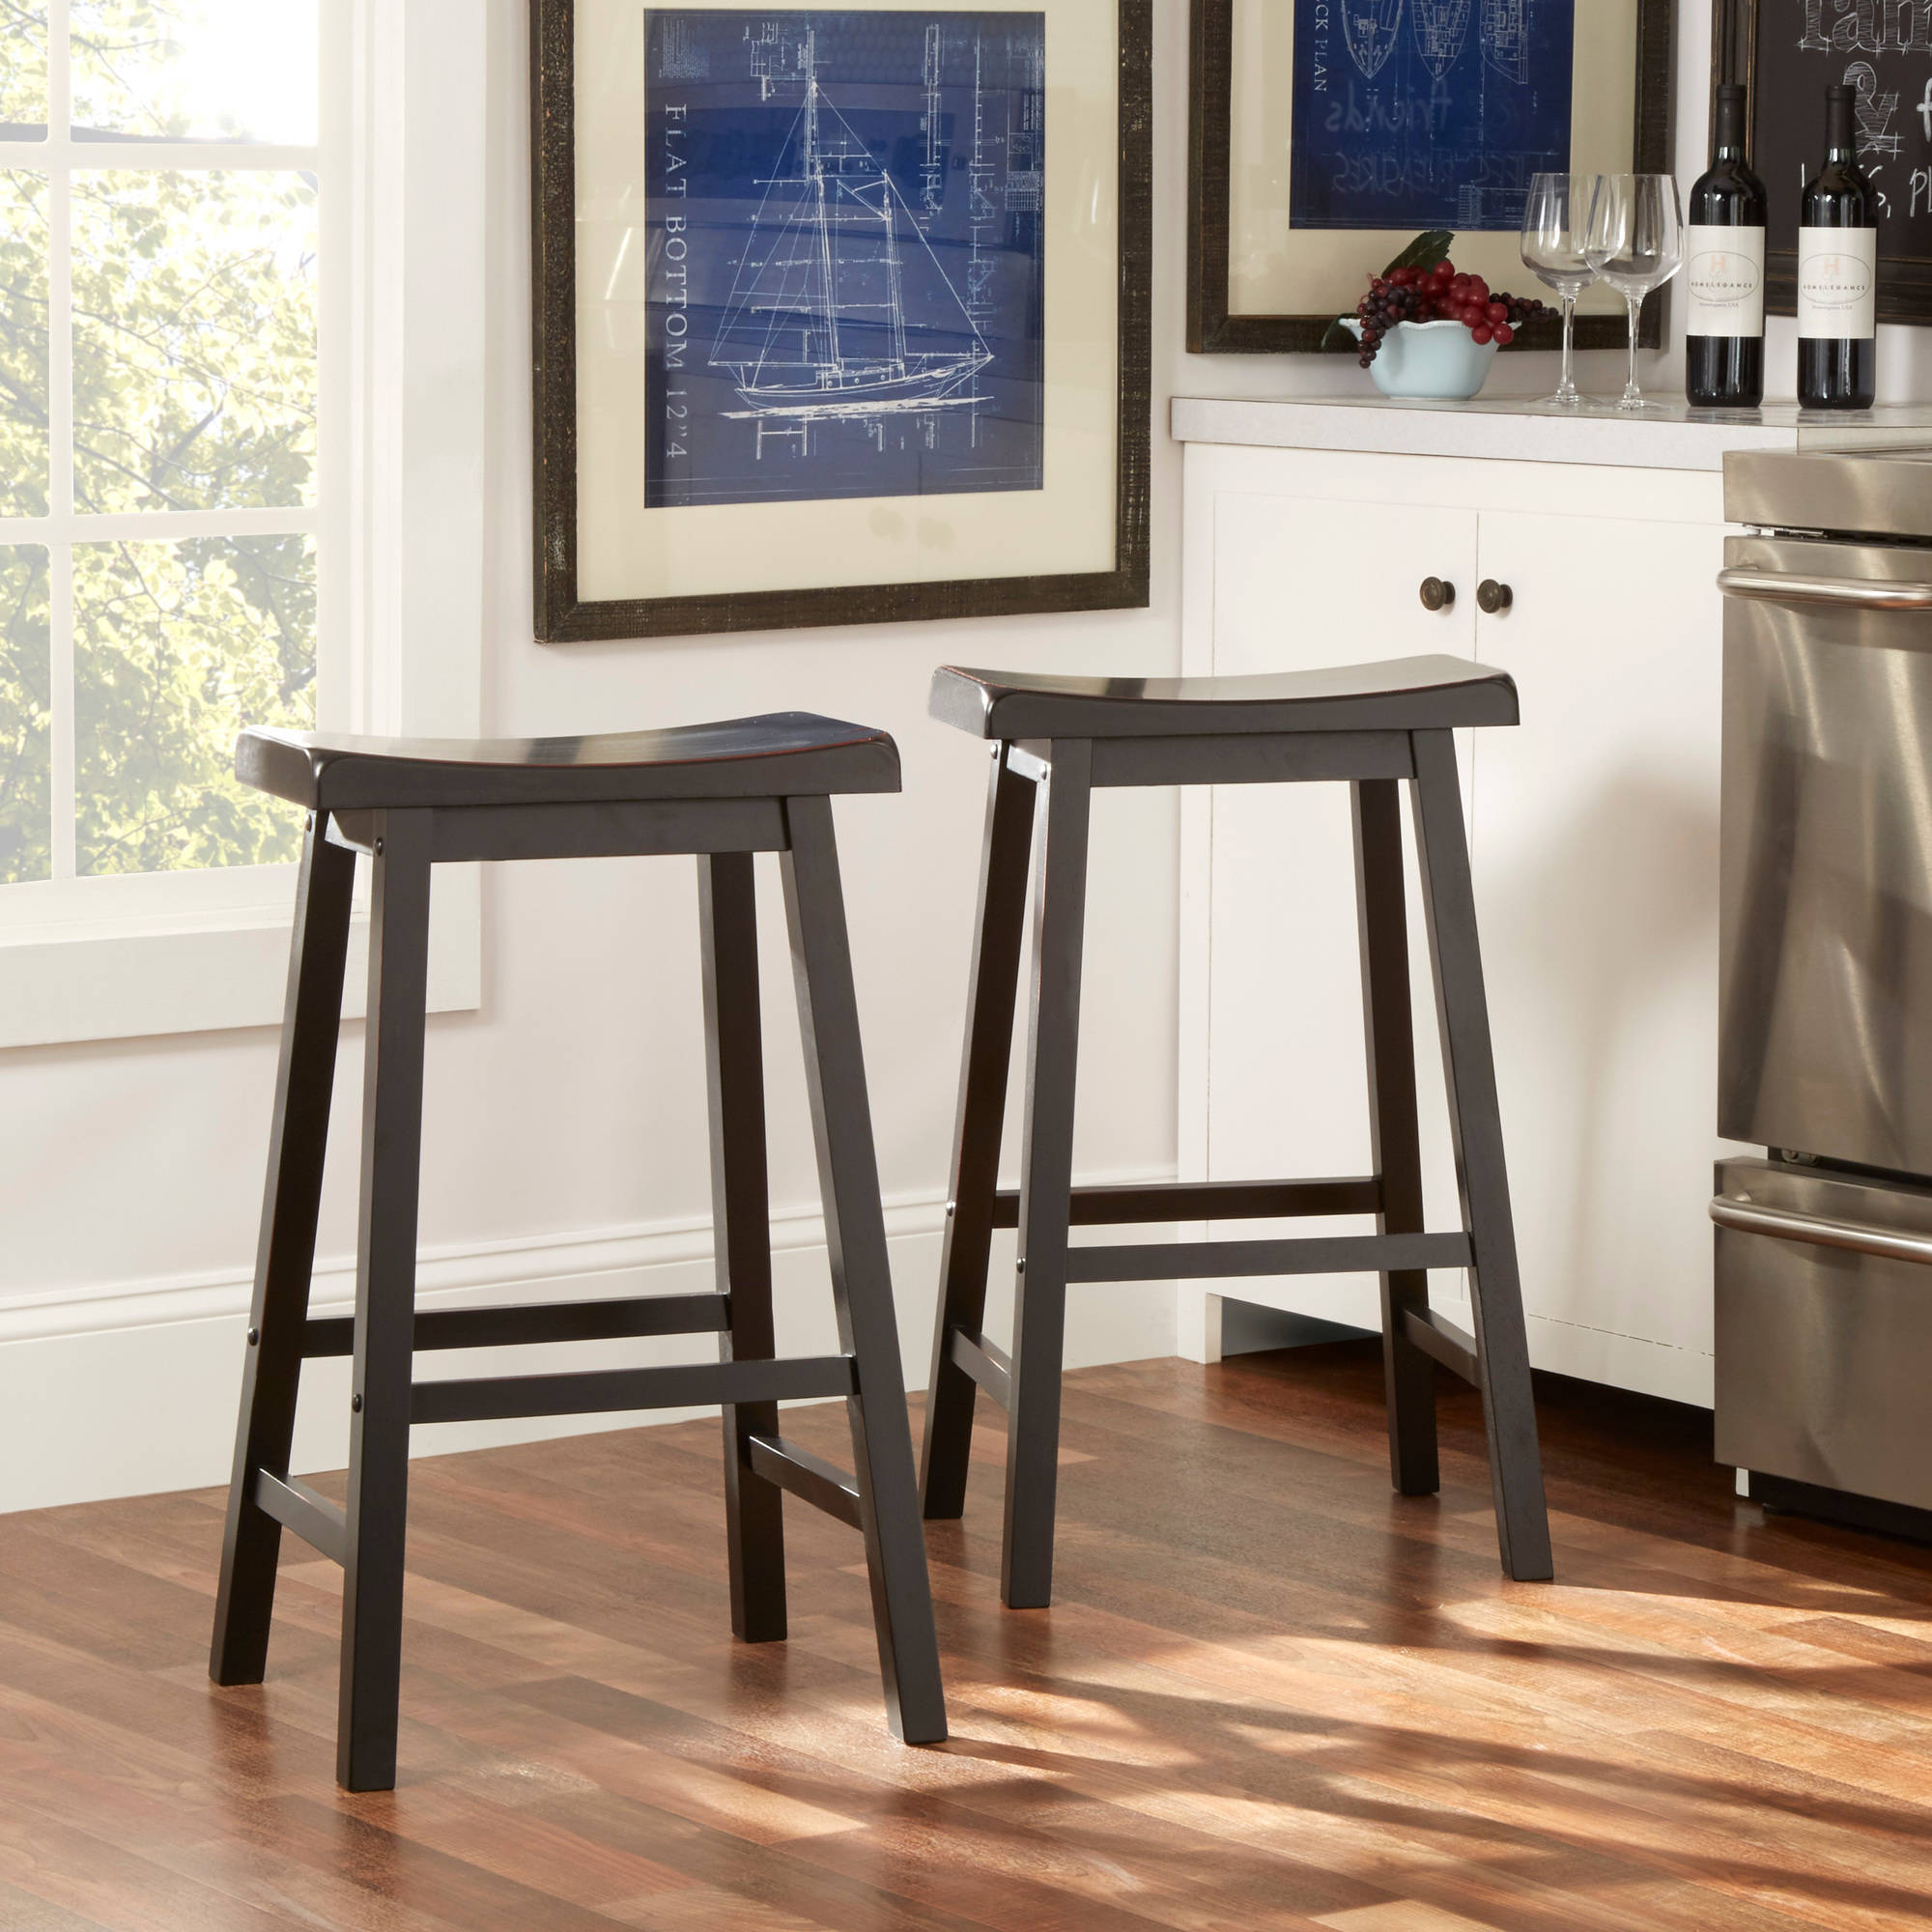 "Beech Wood Bar Stools 30"" Set of 2 Natural Walmart"